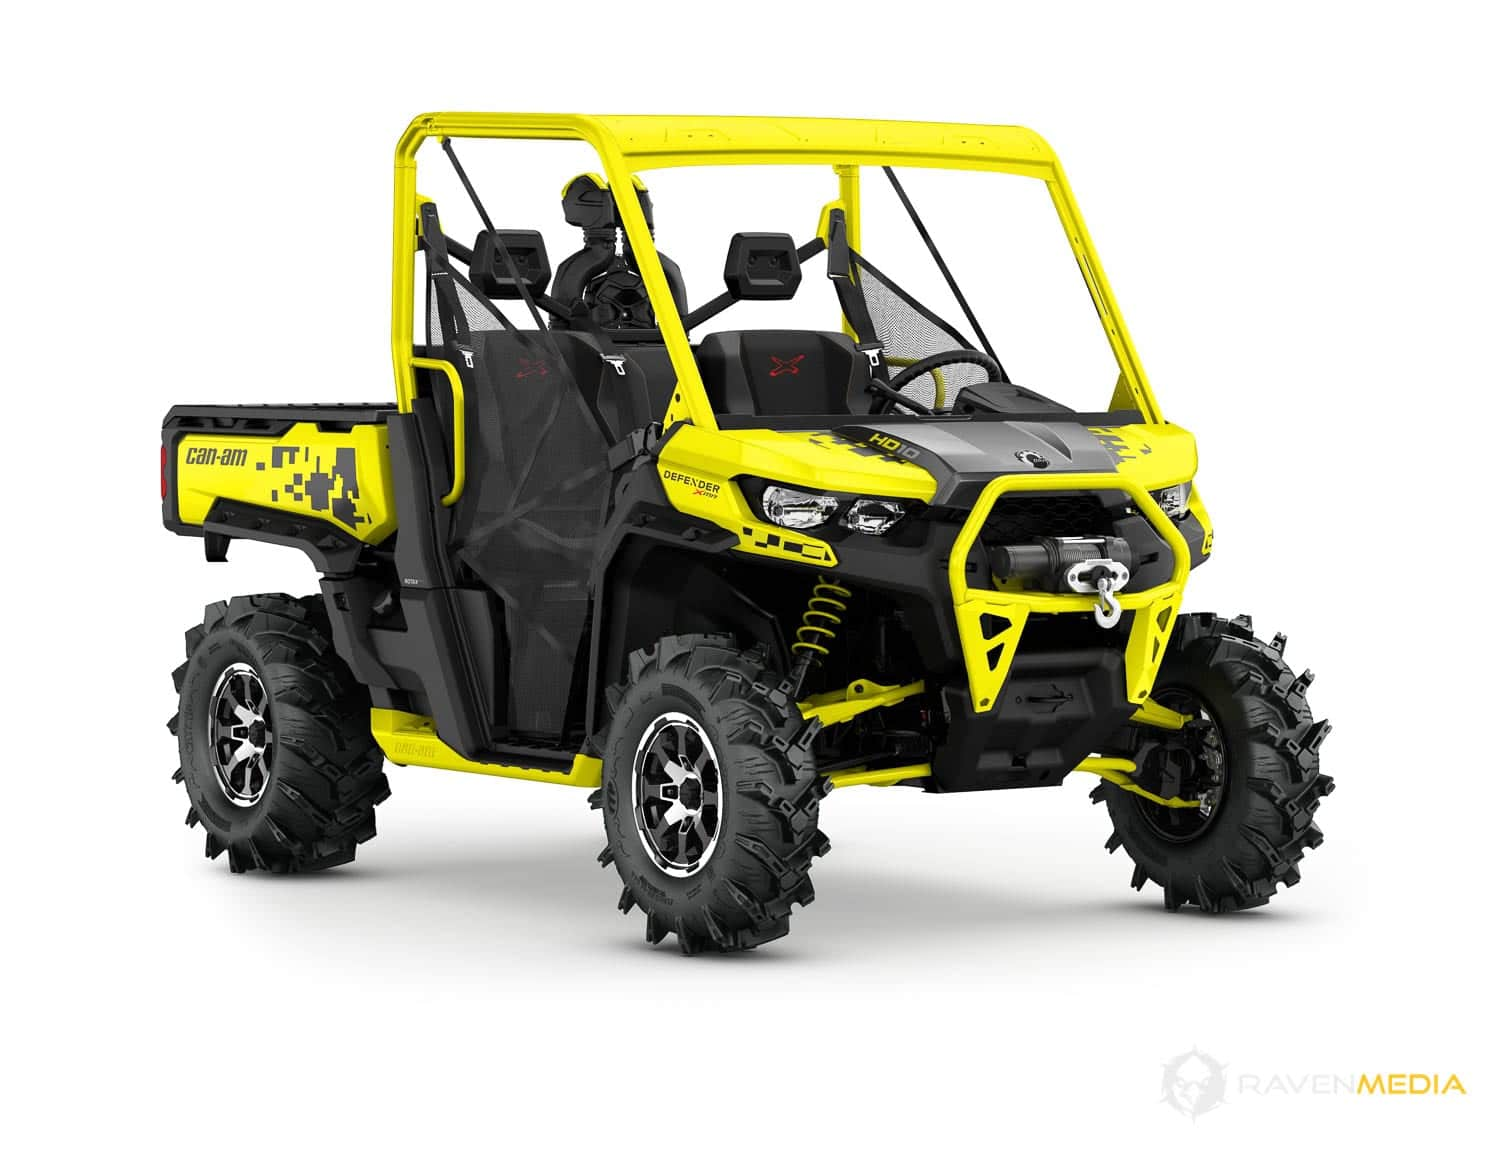 2019 Can-Am Off-Road Lineup - What's New | ATV Trail Rider